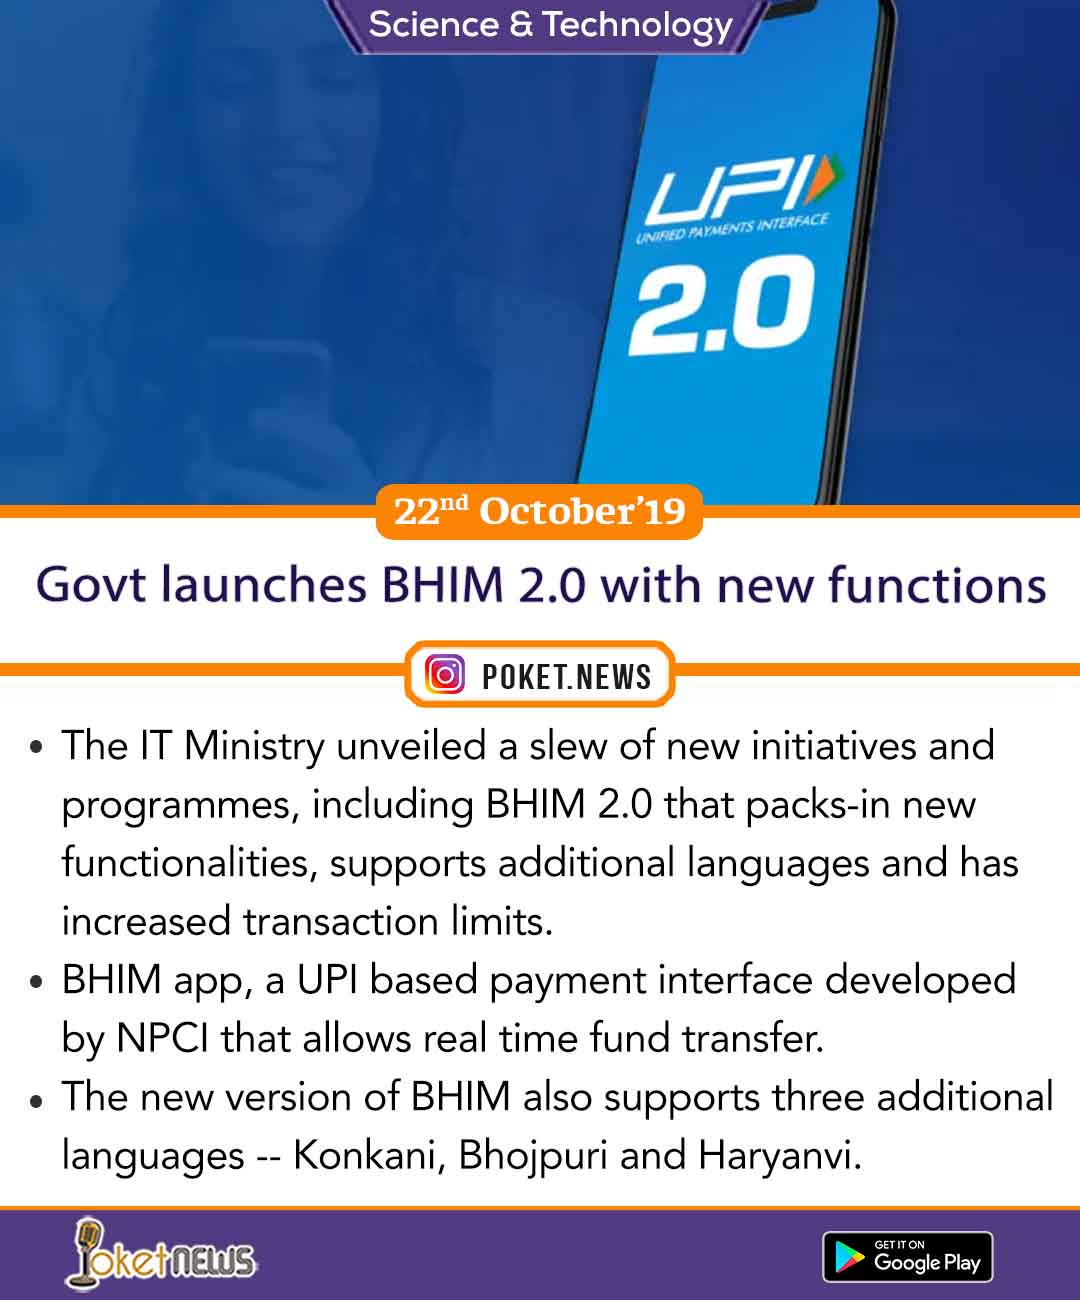 Govt launches BHIM 2.0 with new functions